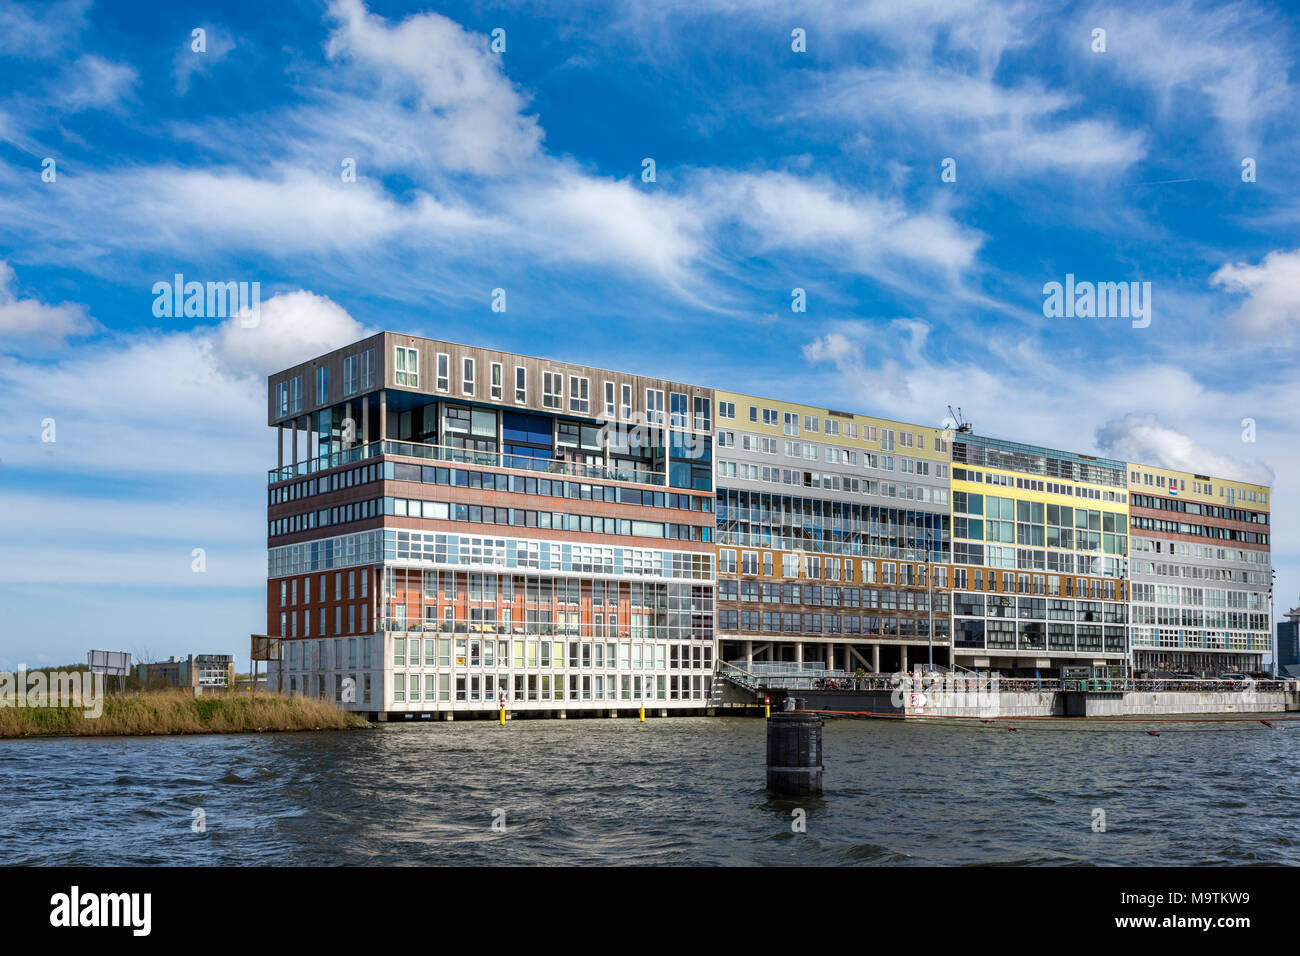 Unique modern design apartment building on the waterside 't IJ in Amsterdam the Netherlands. - Stock Image